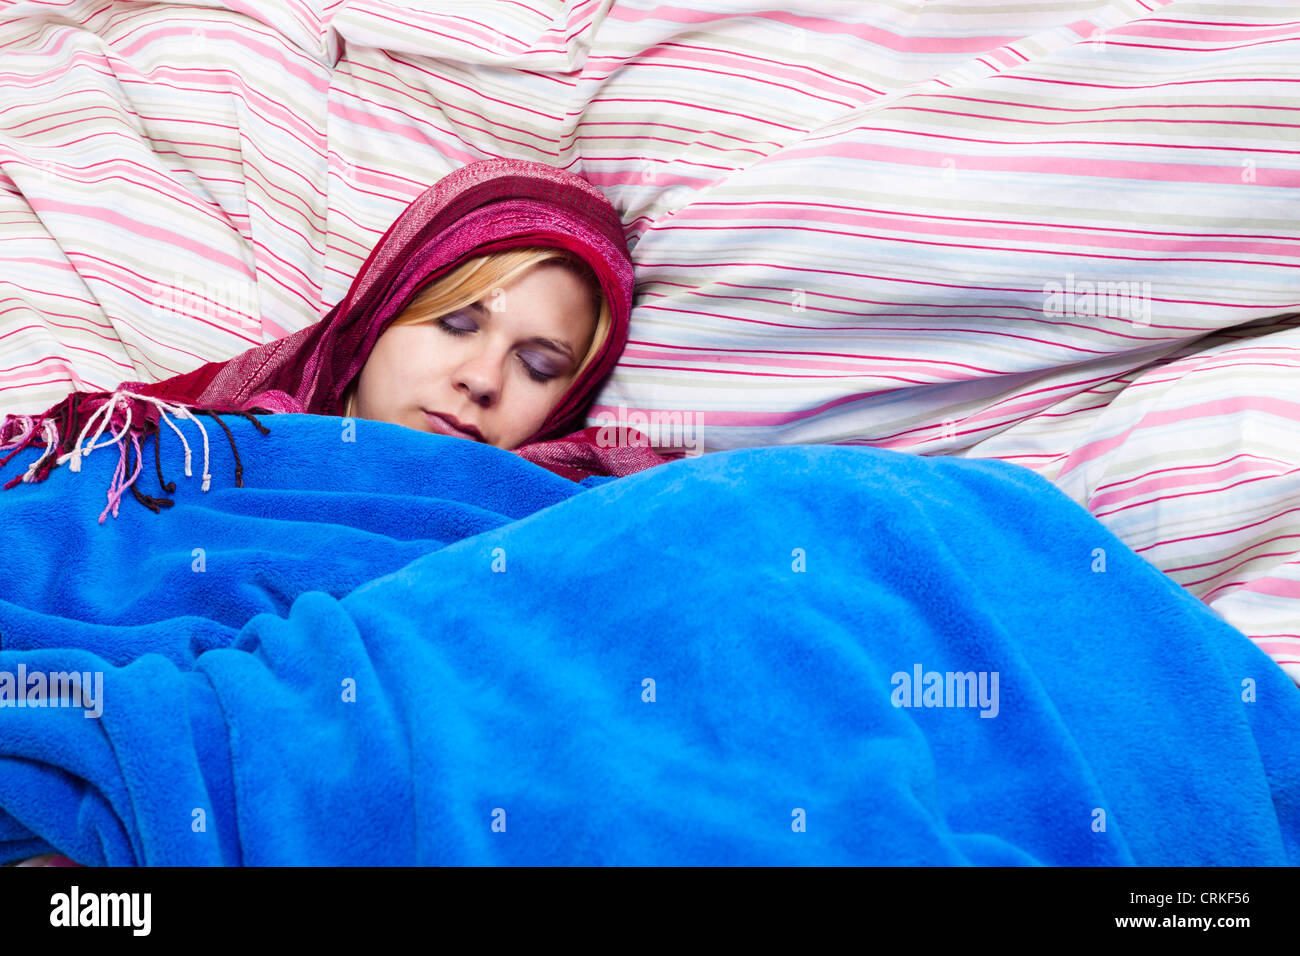 Young woman sleeping wrapped in a duvet. - Stock Image